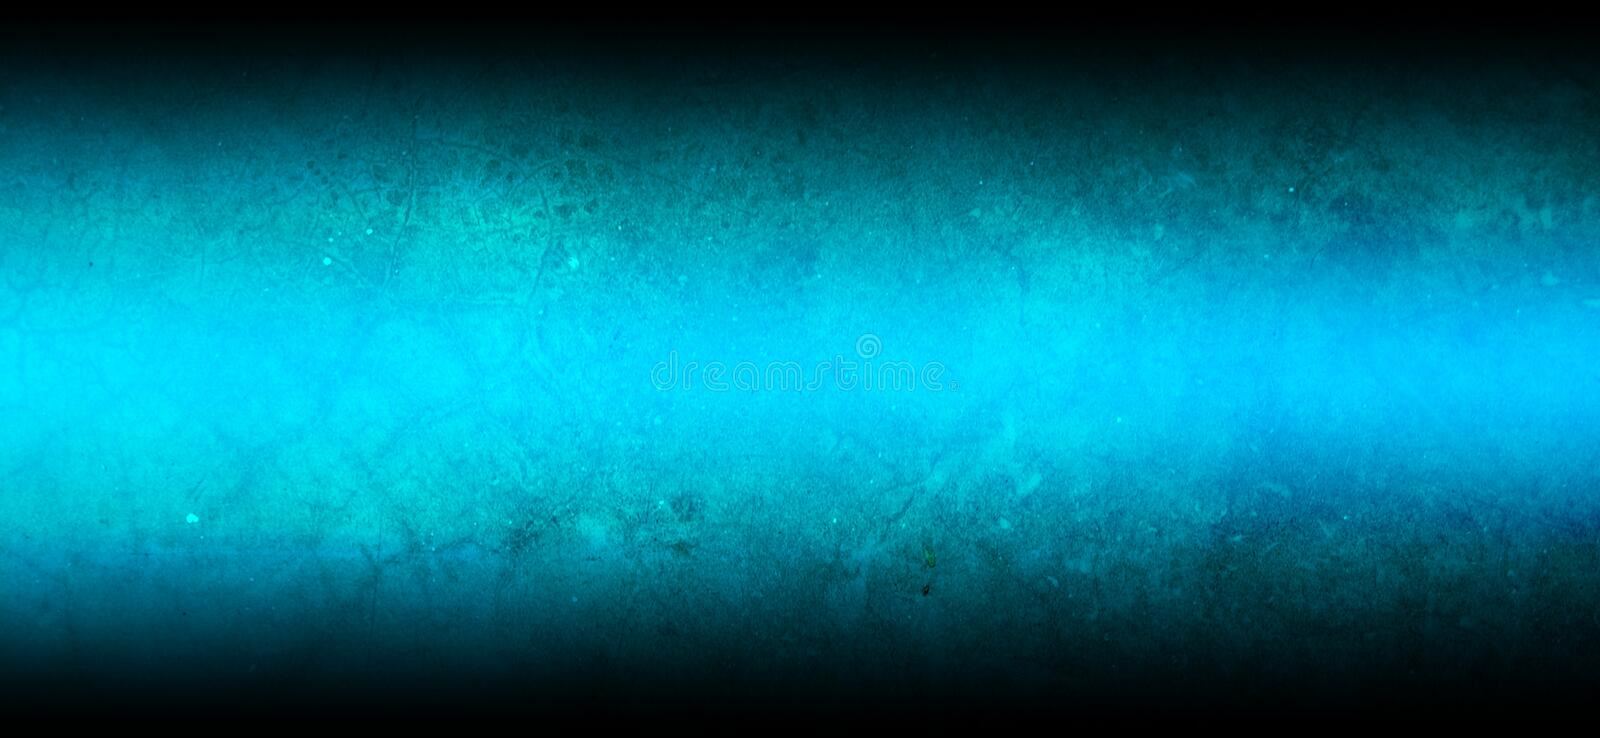 Dark grunge black sky blue color horizontal textured background. Many uses for advertising, book page, paintings, printing, mobile wallpaper, mobile royalty free illustration